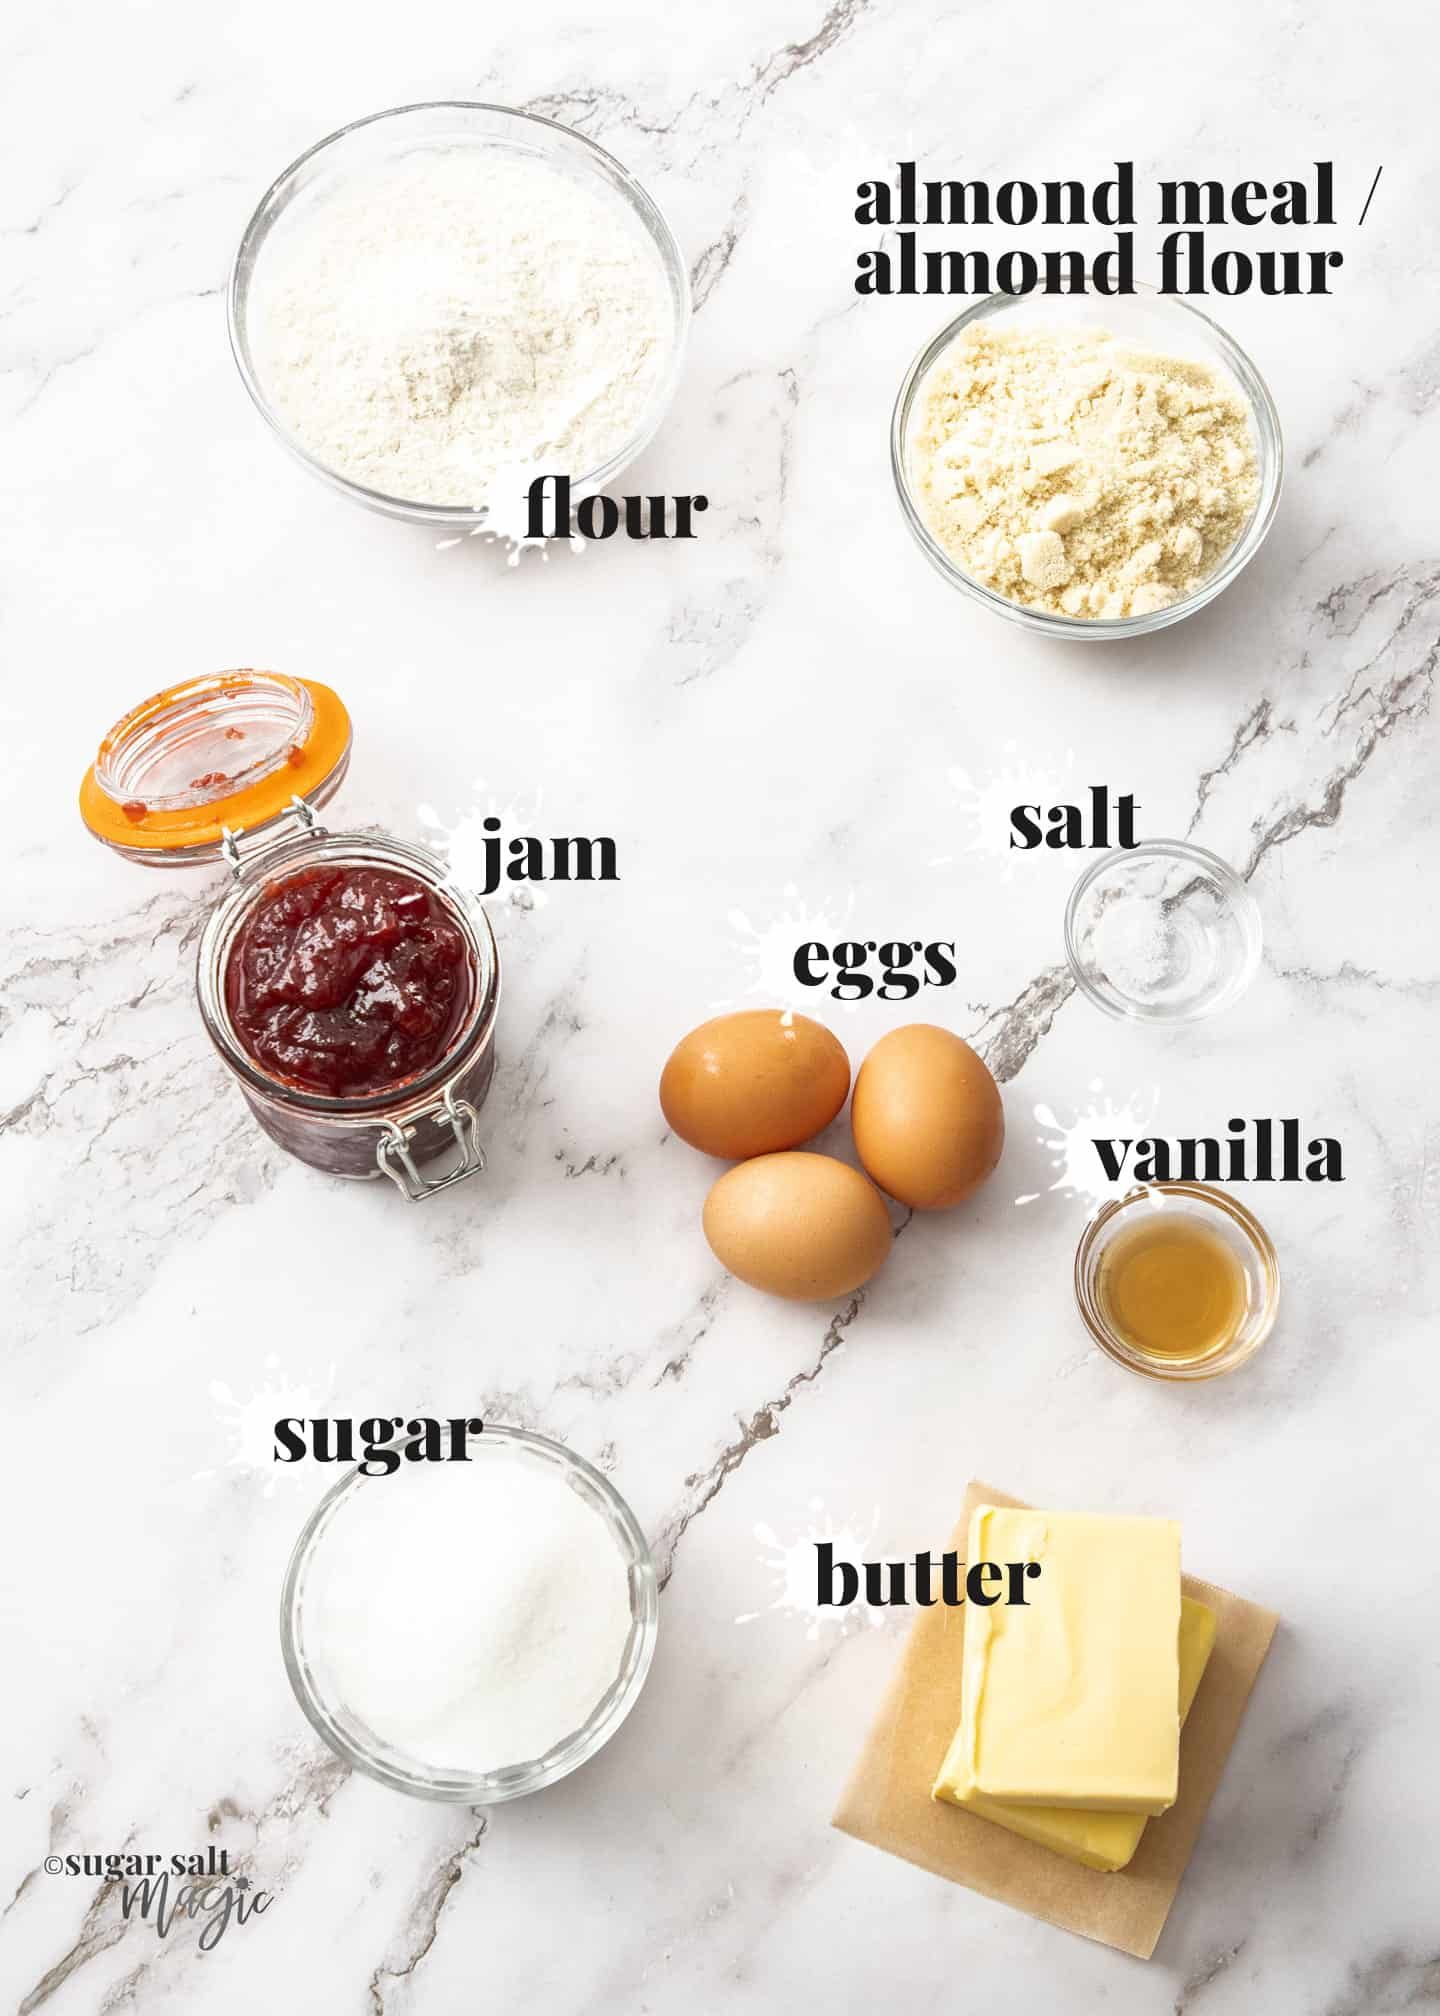 Ingredients for bakewell tart on a white marble surface.